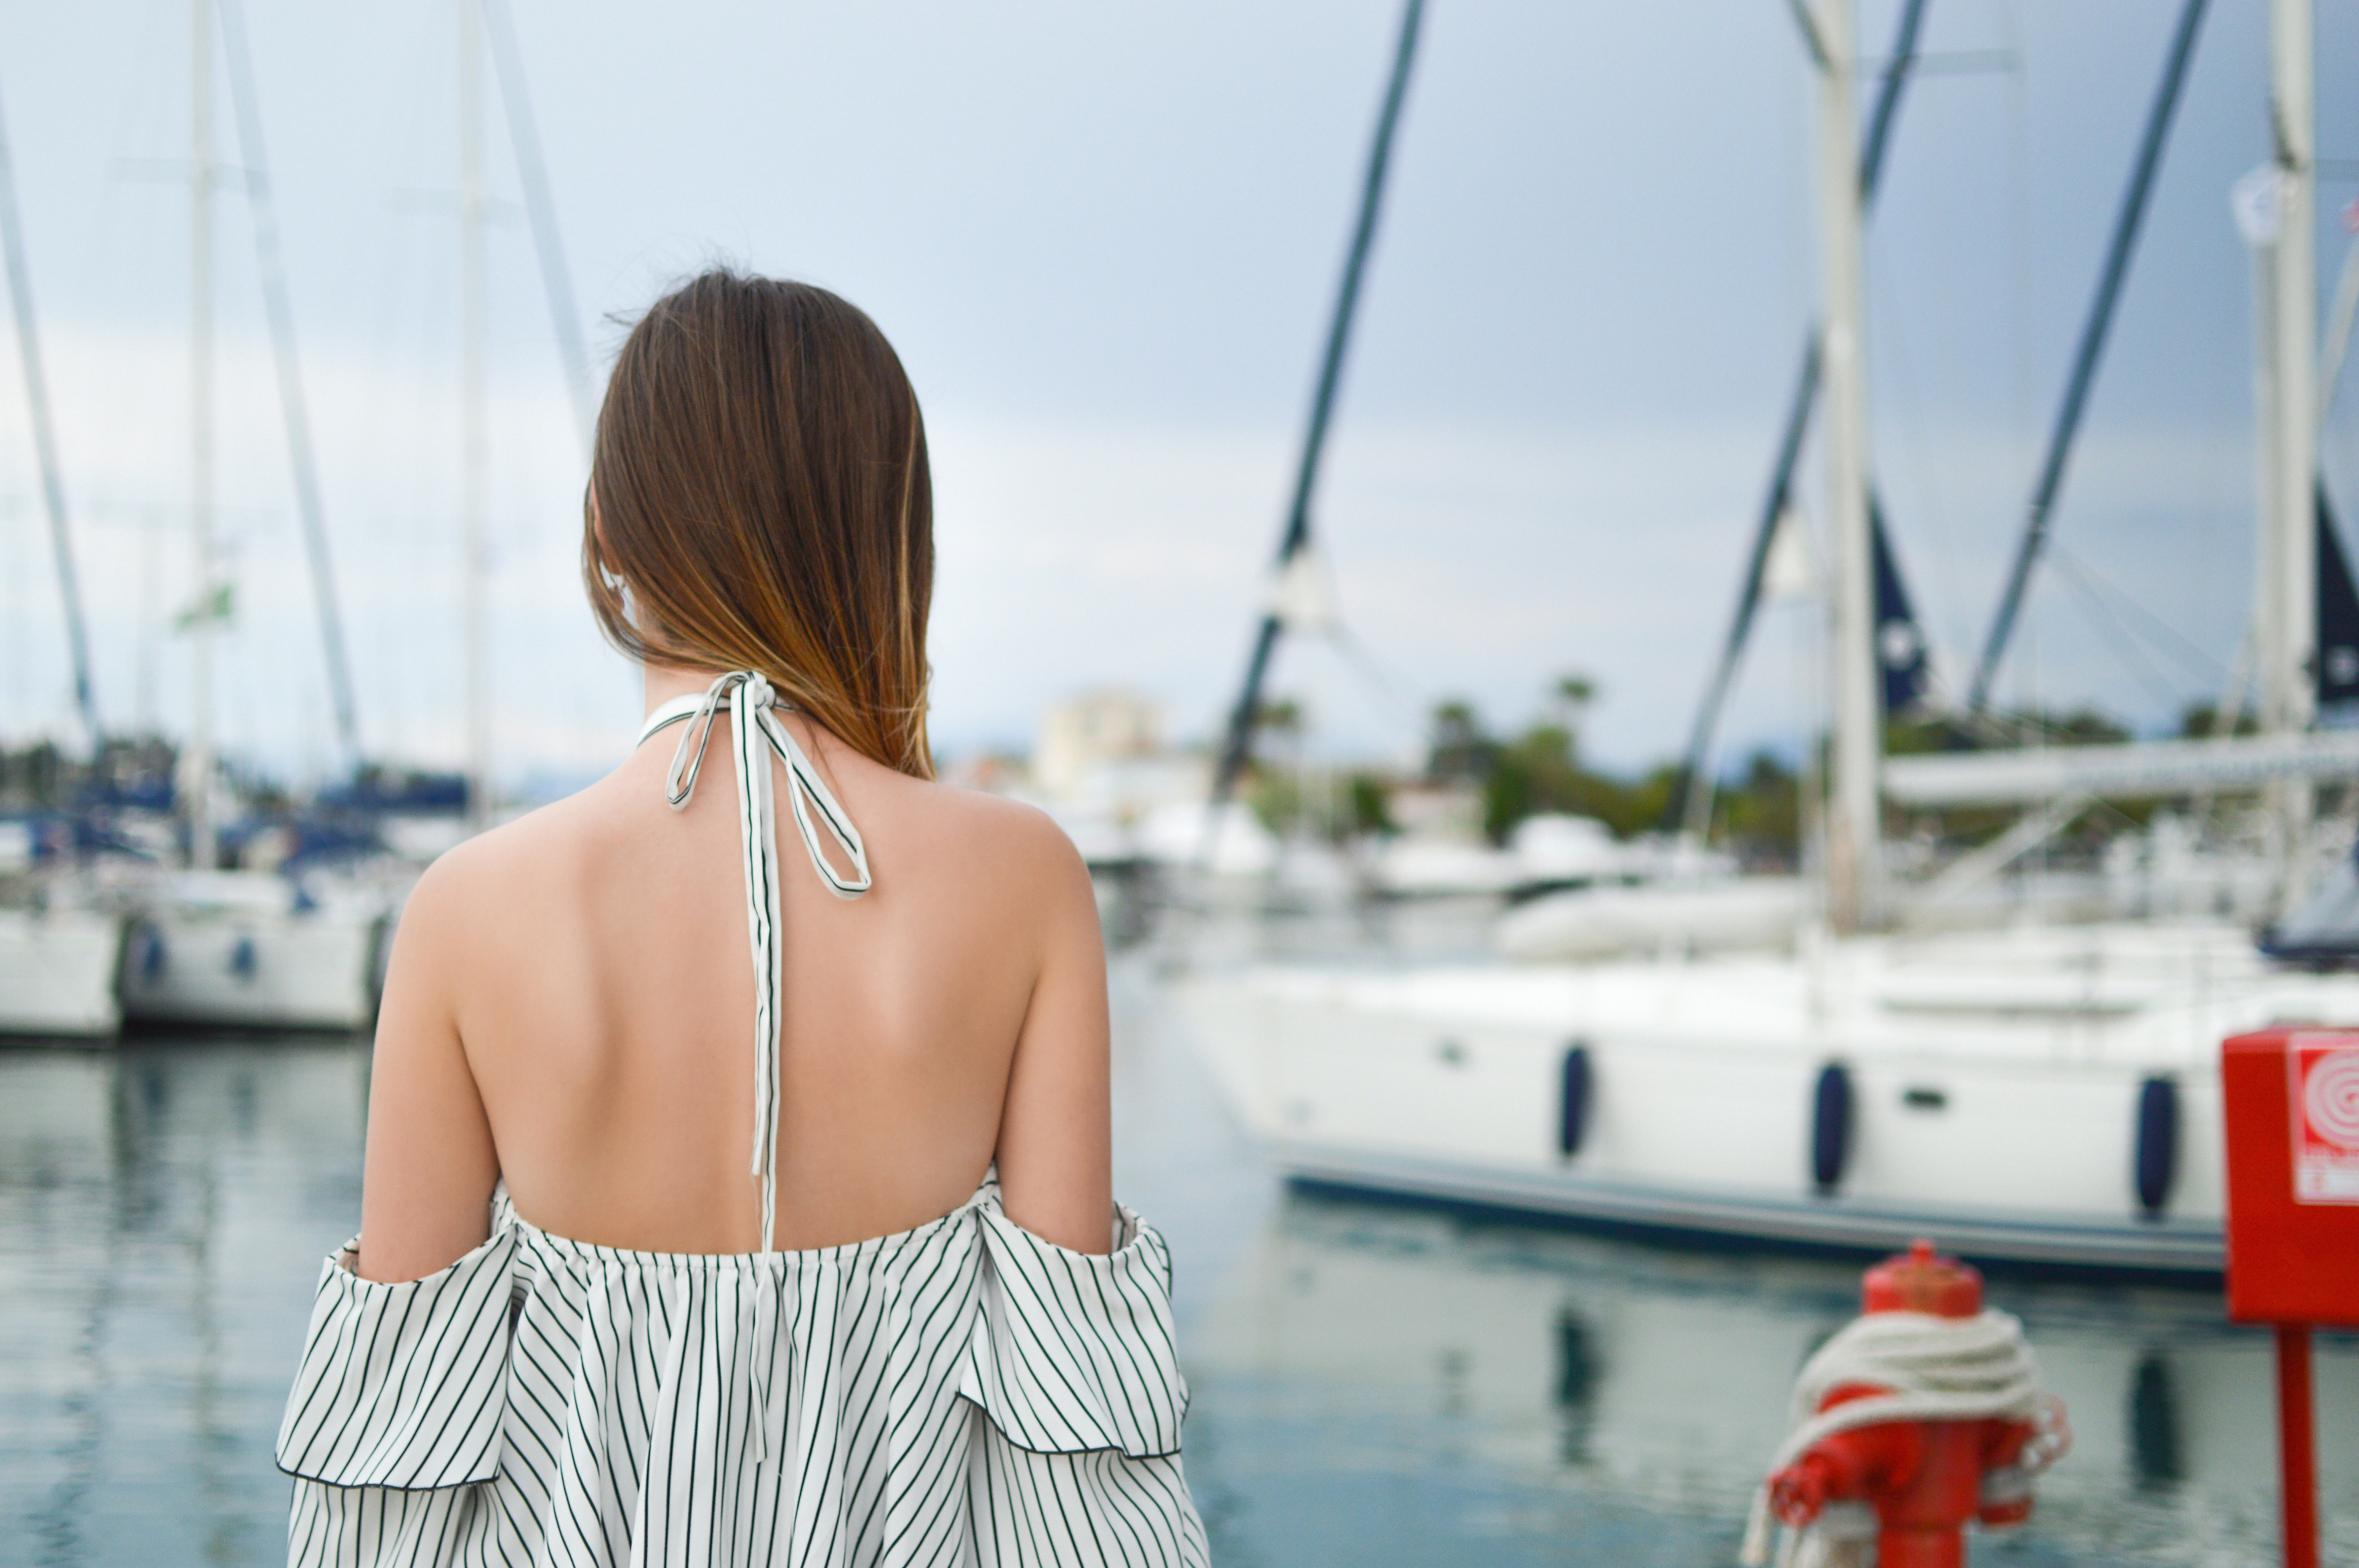 A woman in an off-the-shoulder top looks away from the camera toward boats at Gouvia Marina